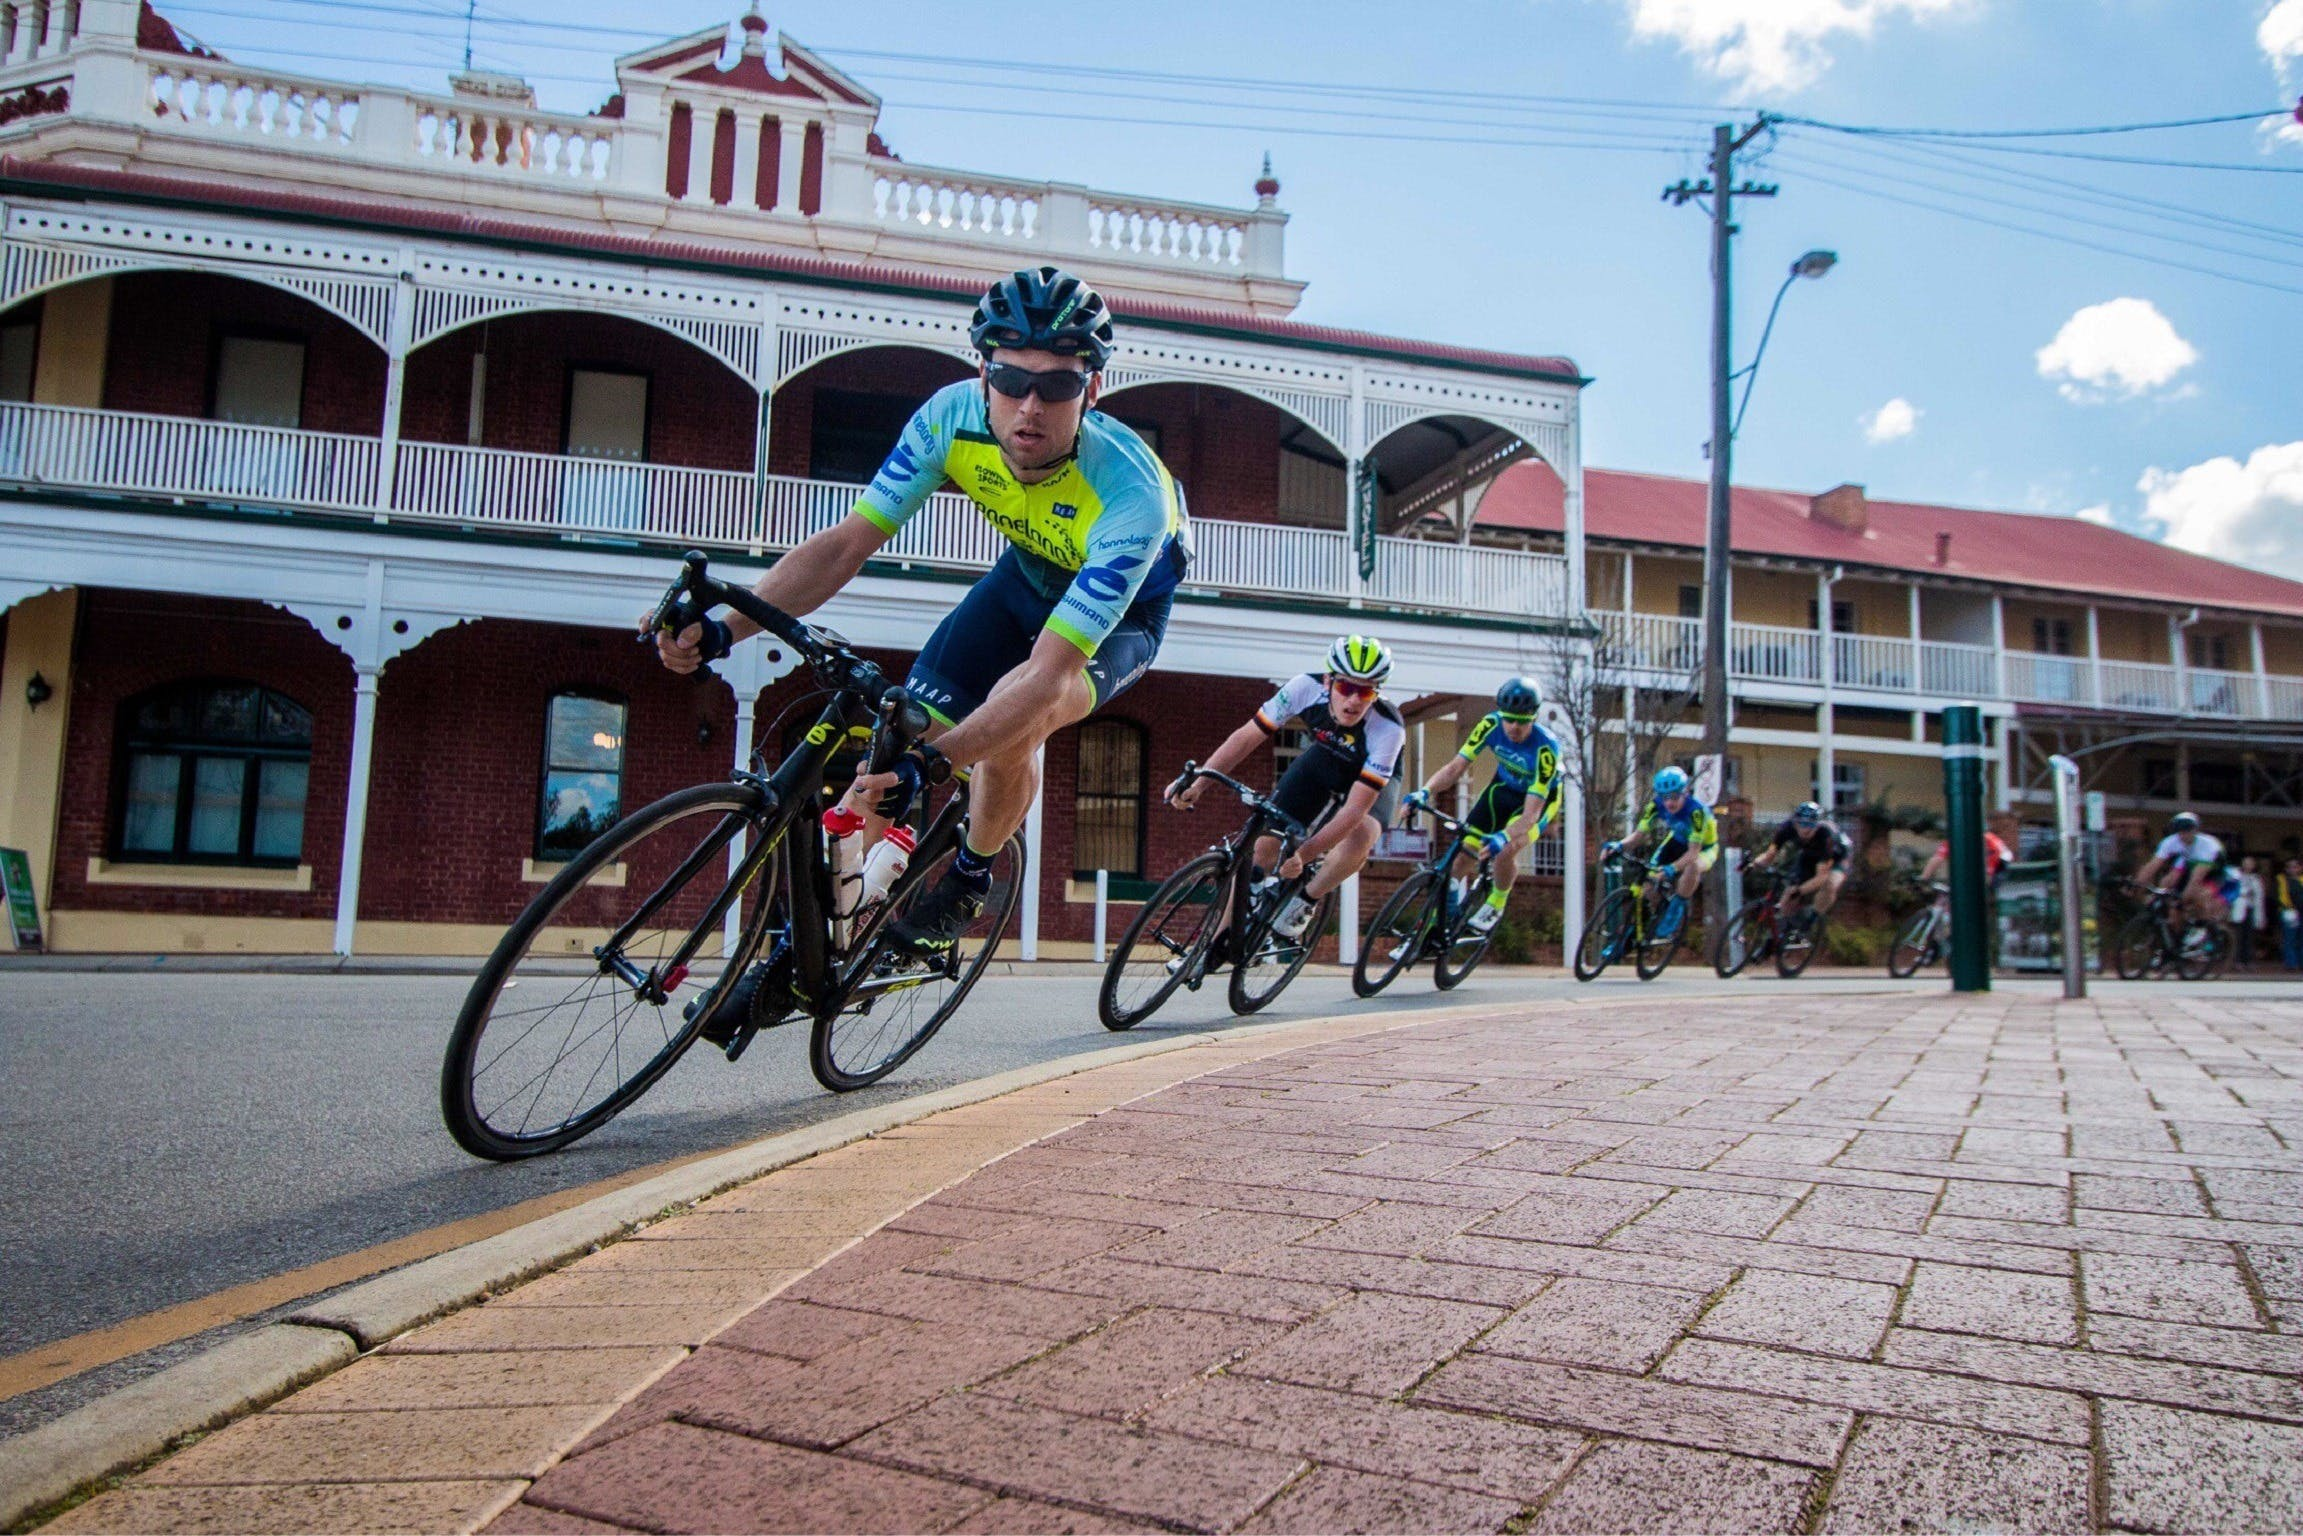 The West Side Story - Avon River Cycle Trail - New South Wales Tourism